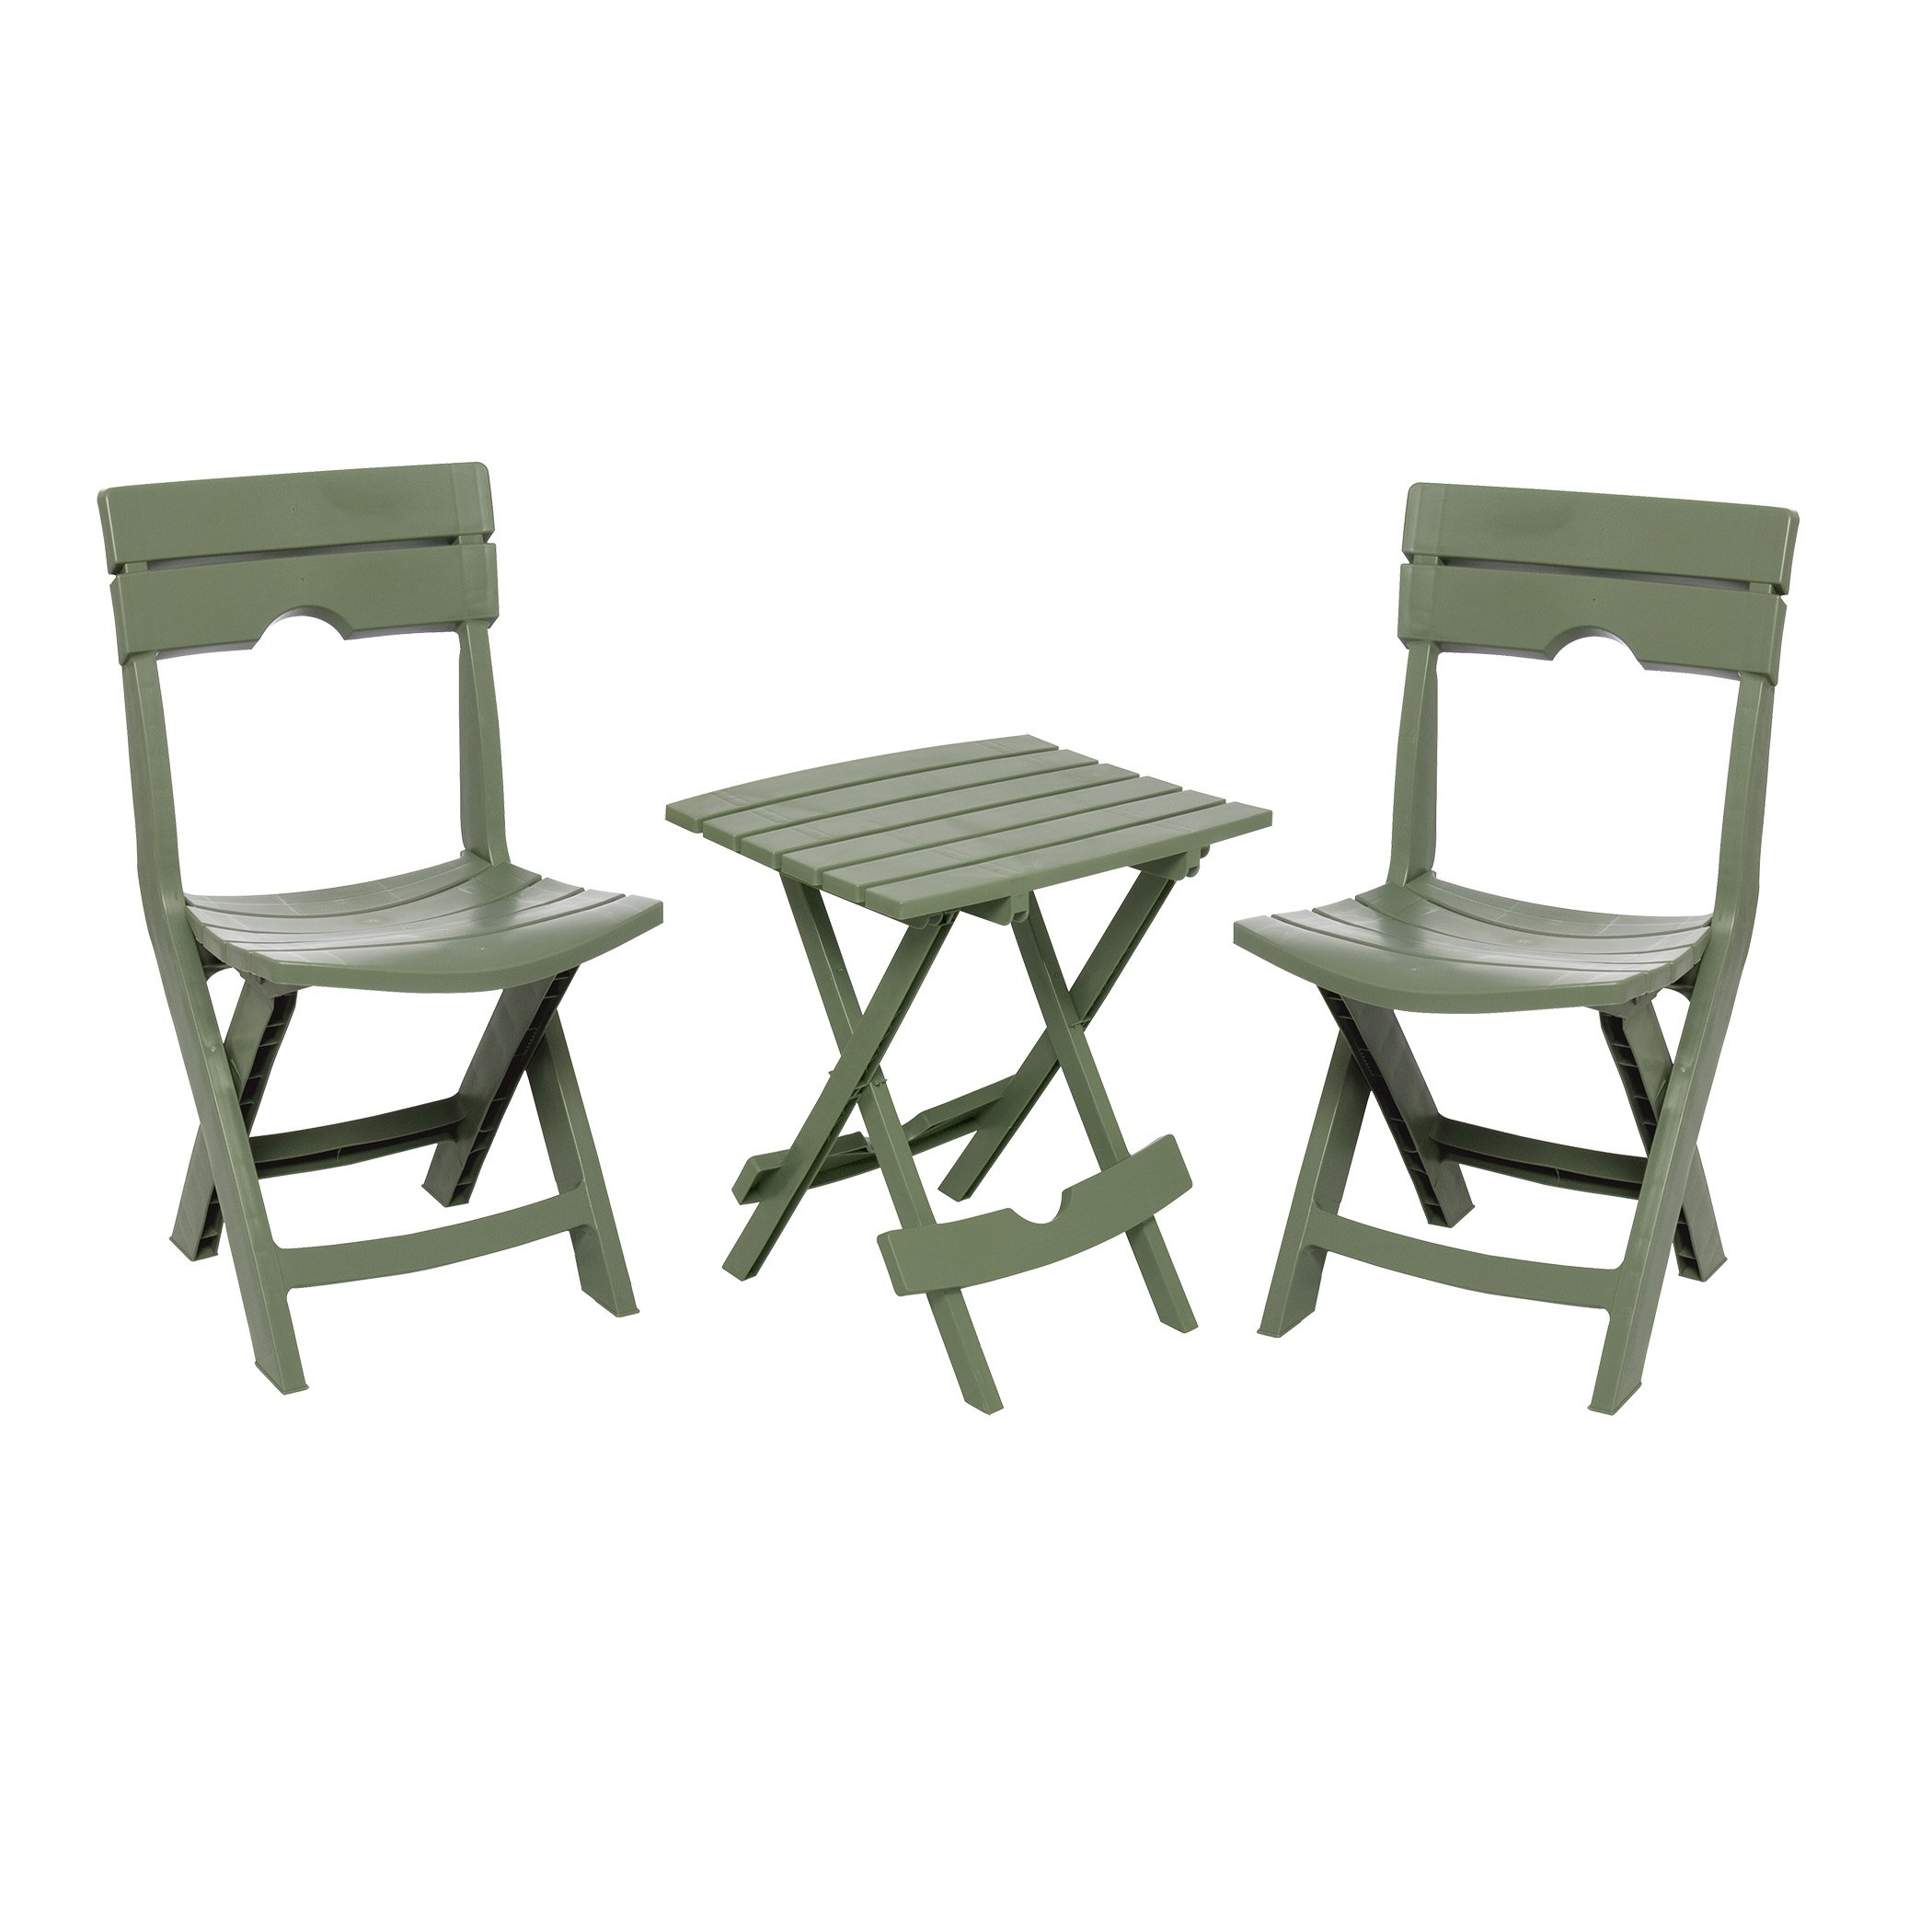 Adams Manufacturing 8595-01-4731 Quik-Fold Conversation Set, Sage